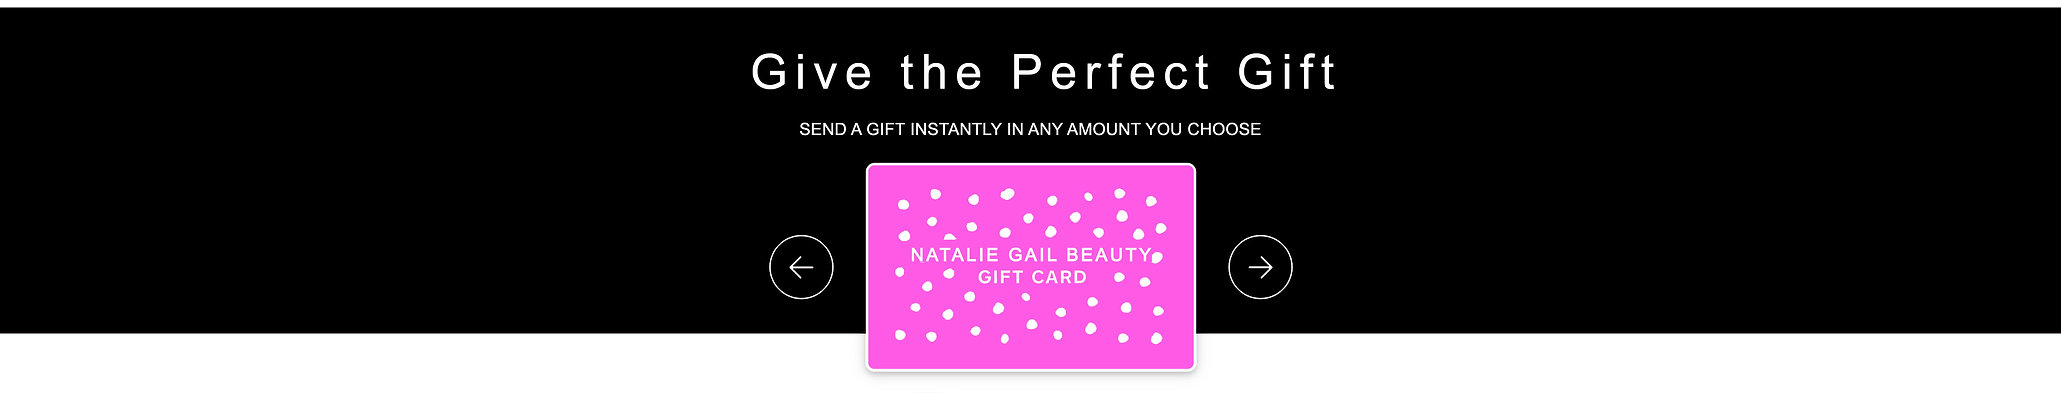 NATALIE GAIL EGIFT CARD